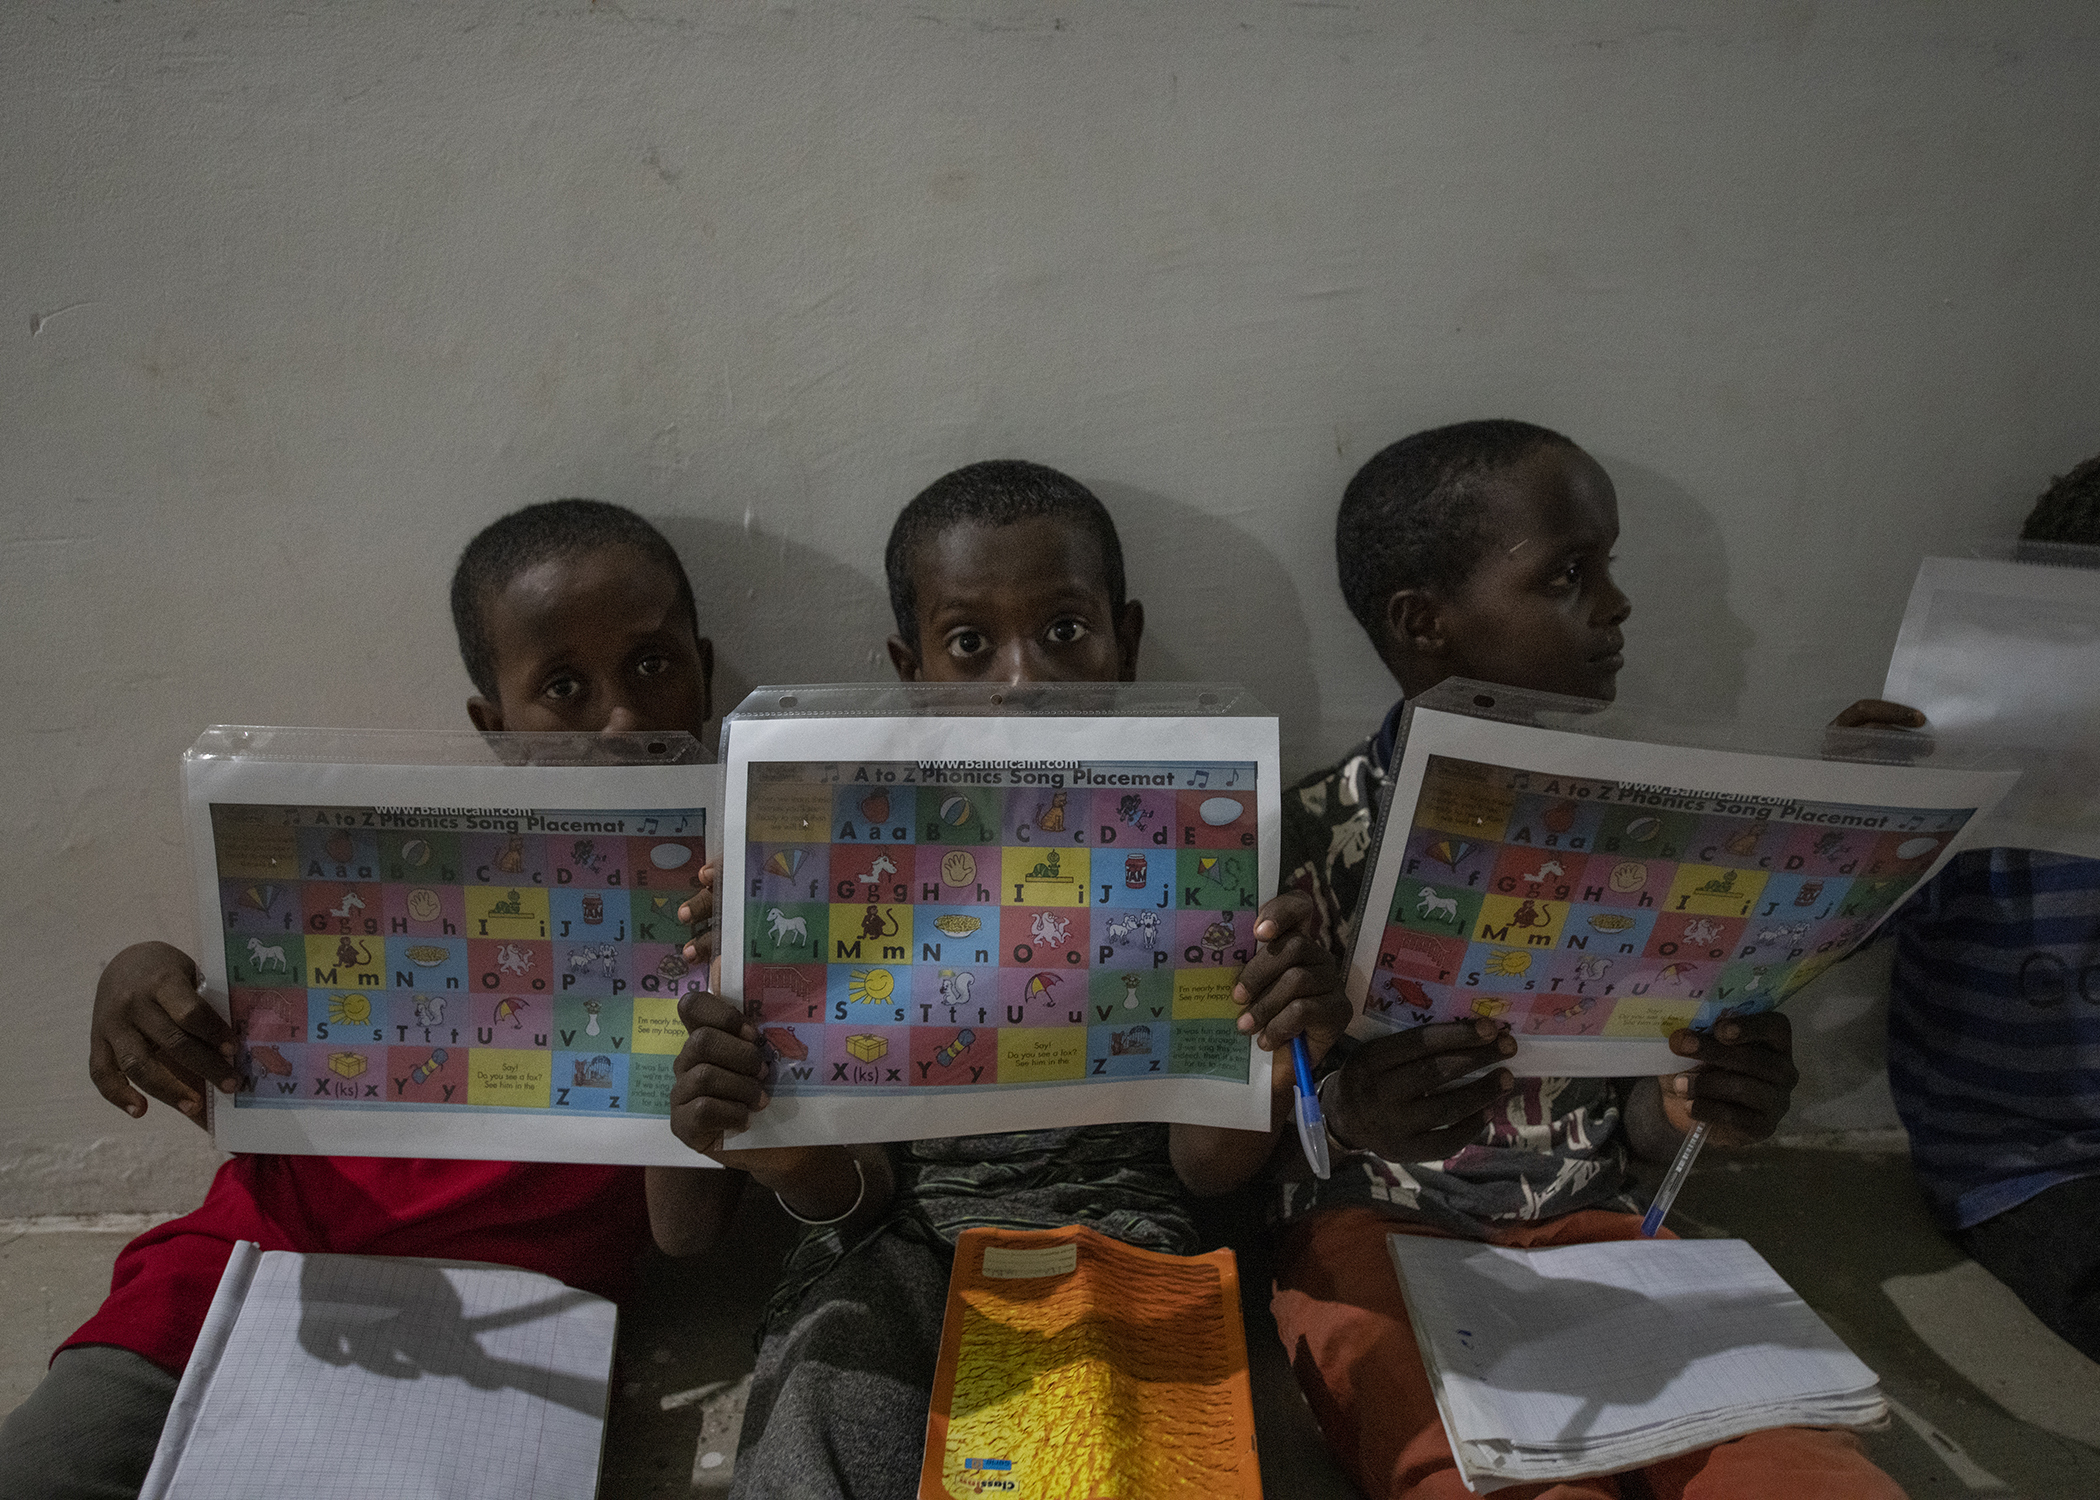 Children use reading aids during an English Discussion Group led by U.S. Army Soldiers from Bravo Company, 404th Civil Affairs Battalion, assigned to Combined Joint Task Force-Horn of Africa, in Tadjourah, Djibouti, Feb. 12, 2019. More than 90 Djiboutian youth and adults attended the group where students develop practical linguistic and rhetorical skills through conversation with English-speaking U.S. service members. (U.S. Air Force photo by Tech. Sgt. Shawn Nickel)